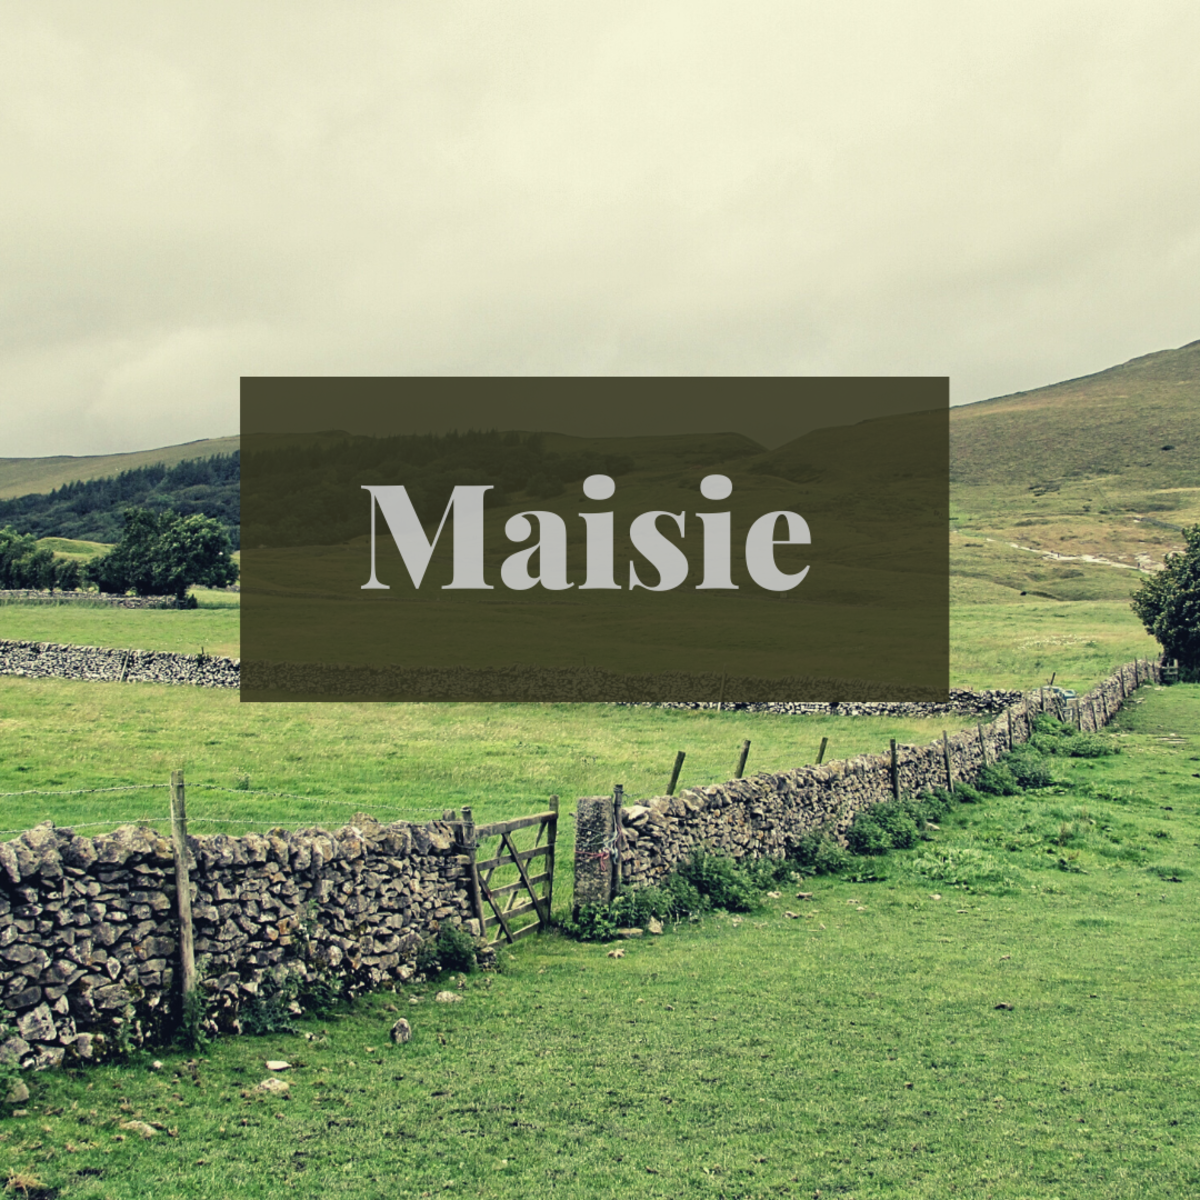 Maisie is a beautiful cottagecore name based in nature.